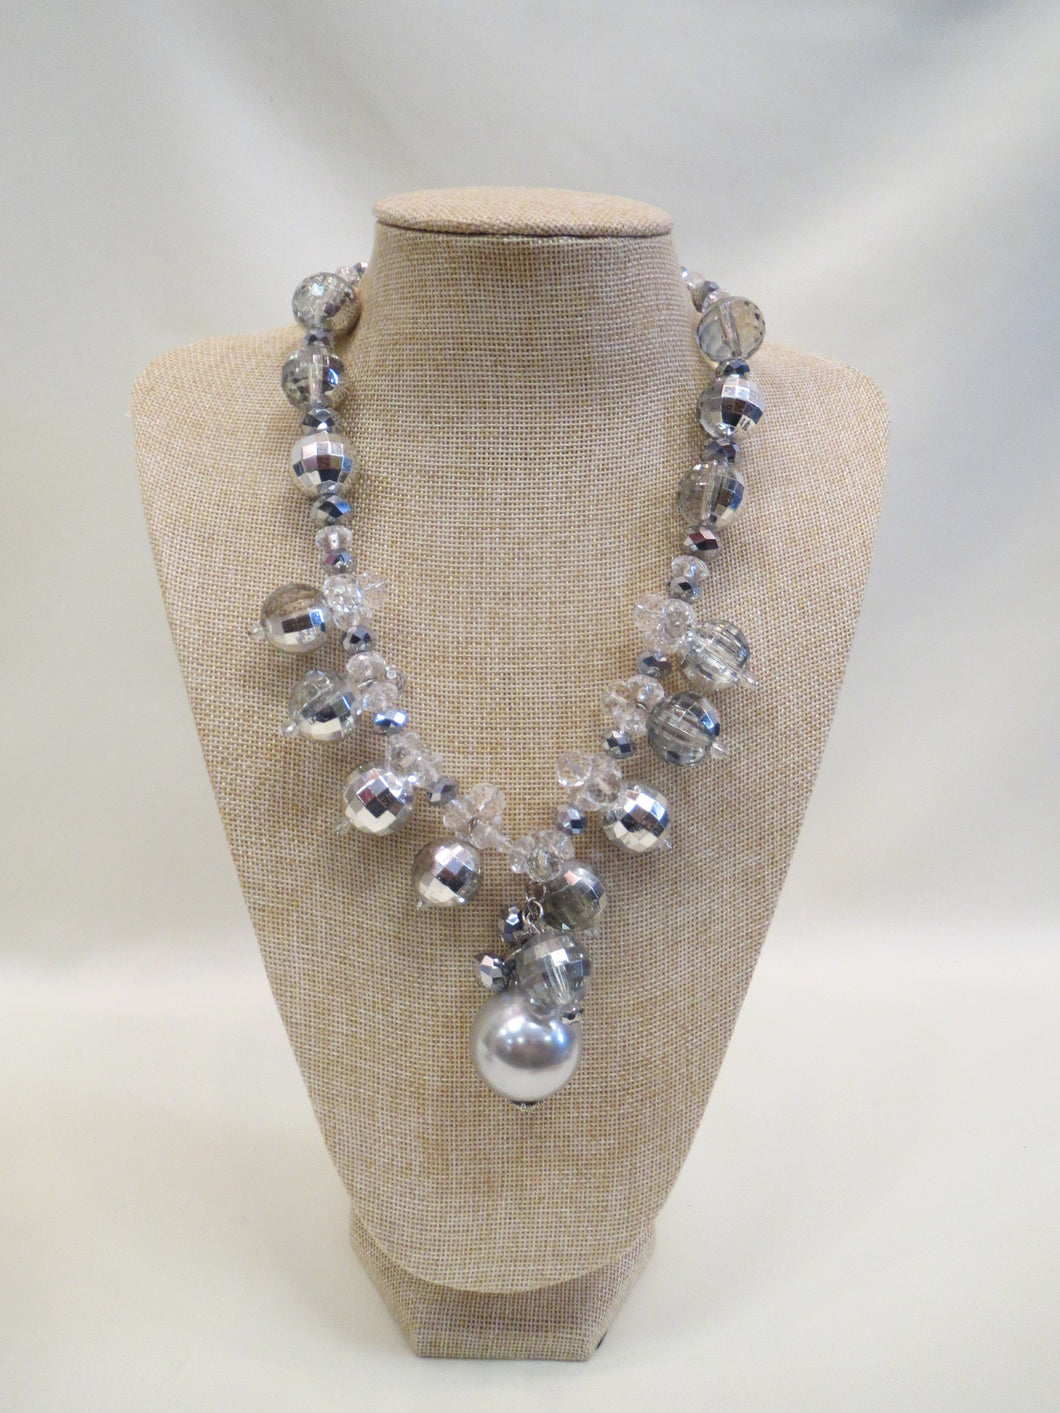 ADO Silver & Pearl Chunky Necklace | All Dec'd Out